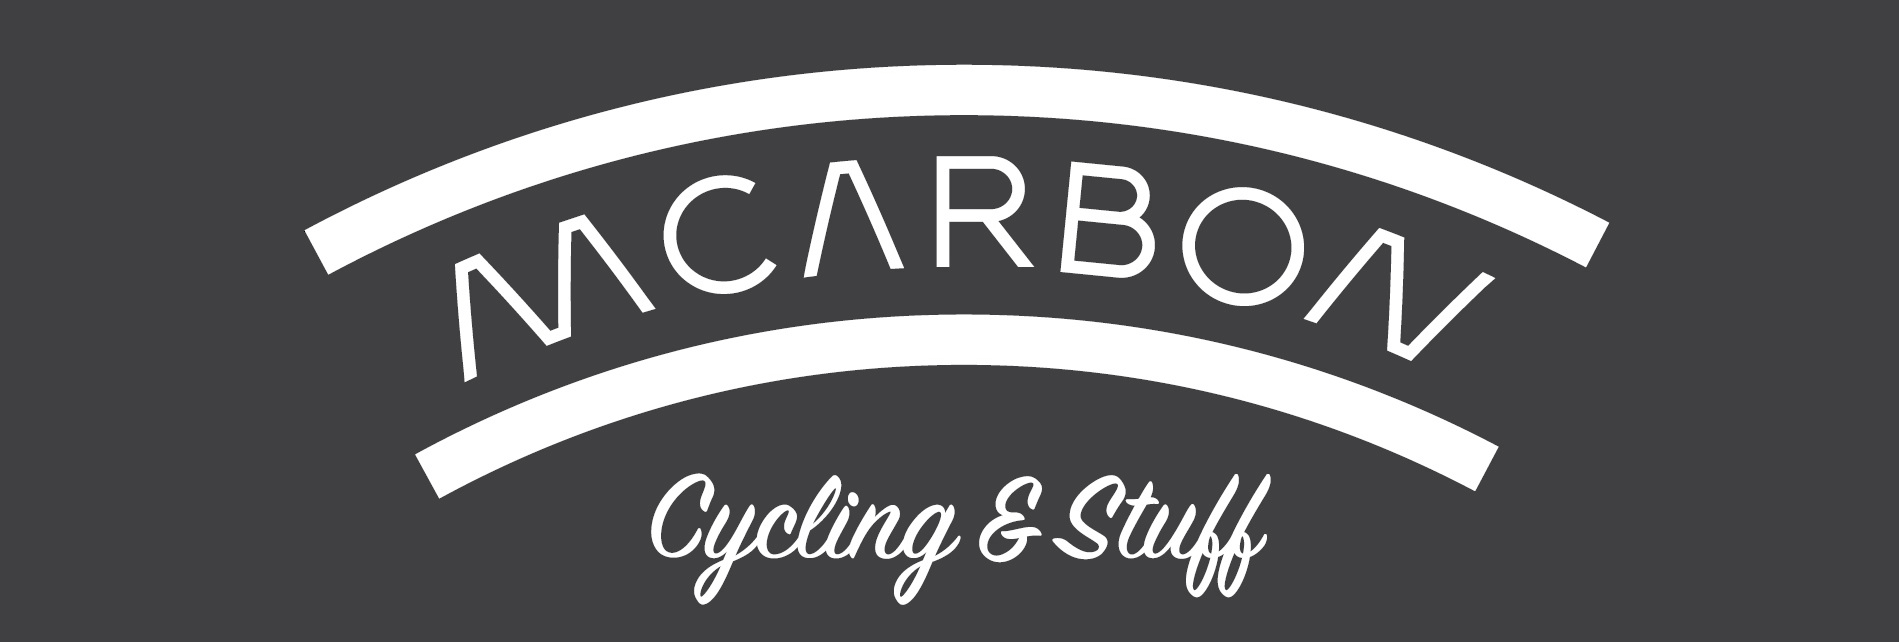 MCarbon Cycling & Stuff